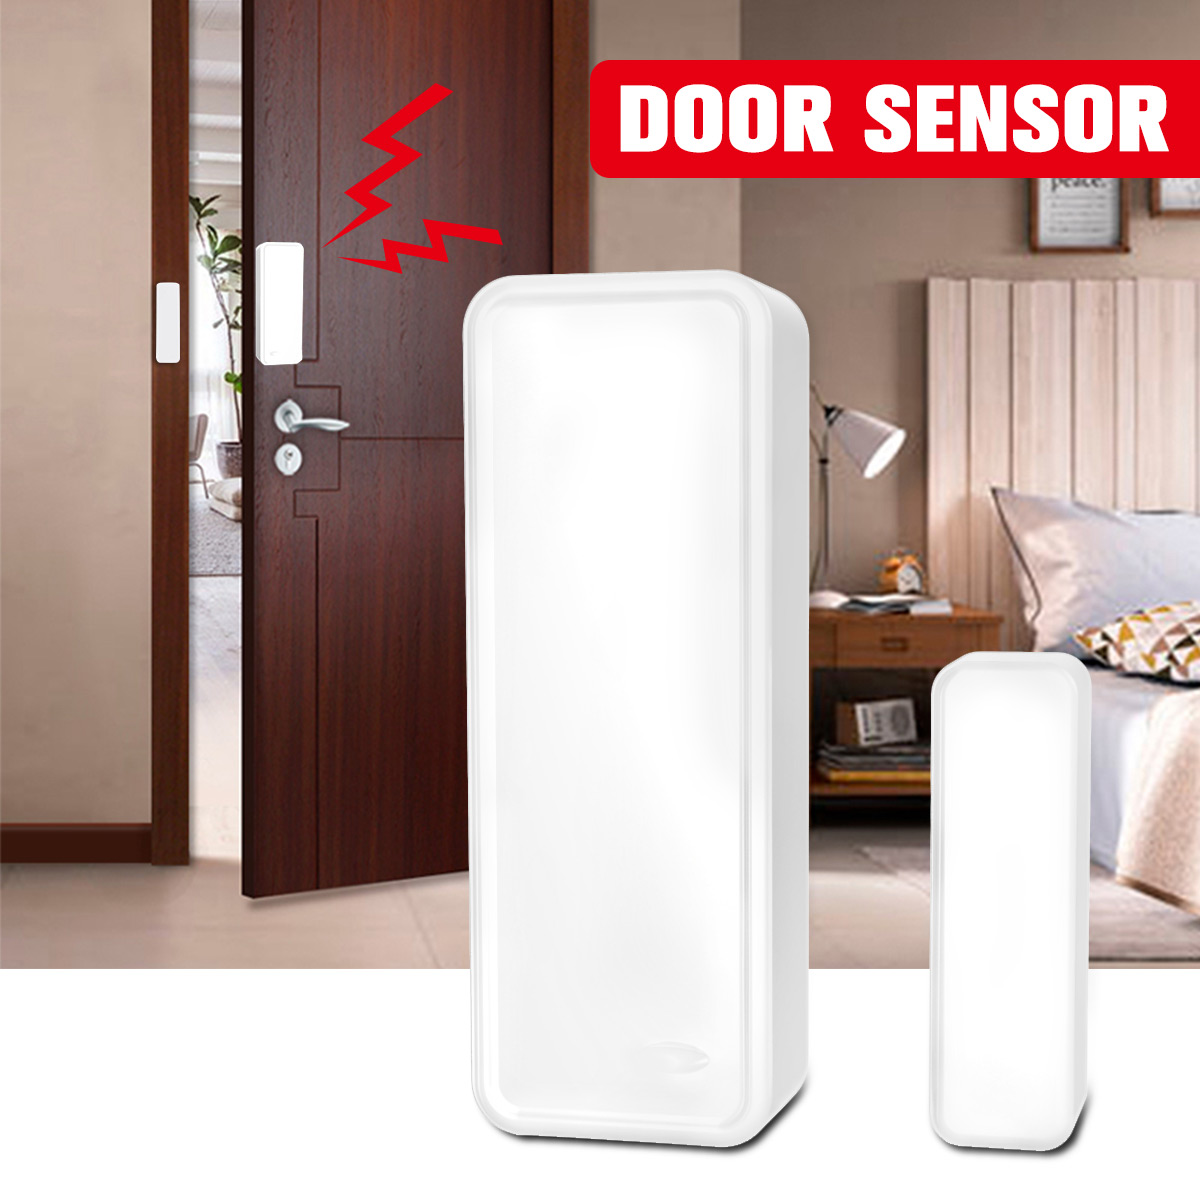 Wireless Door Window Sensor Magnetic Strip GS-WDS07 433MHz Door Sensor Home Office Security Entry Alarm Warning System